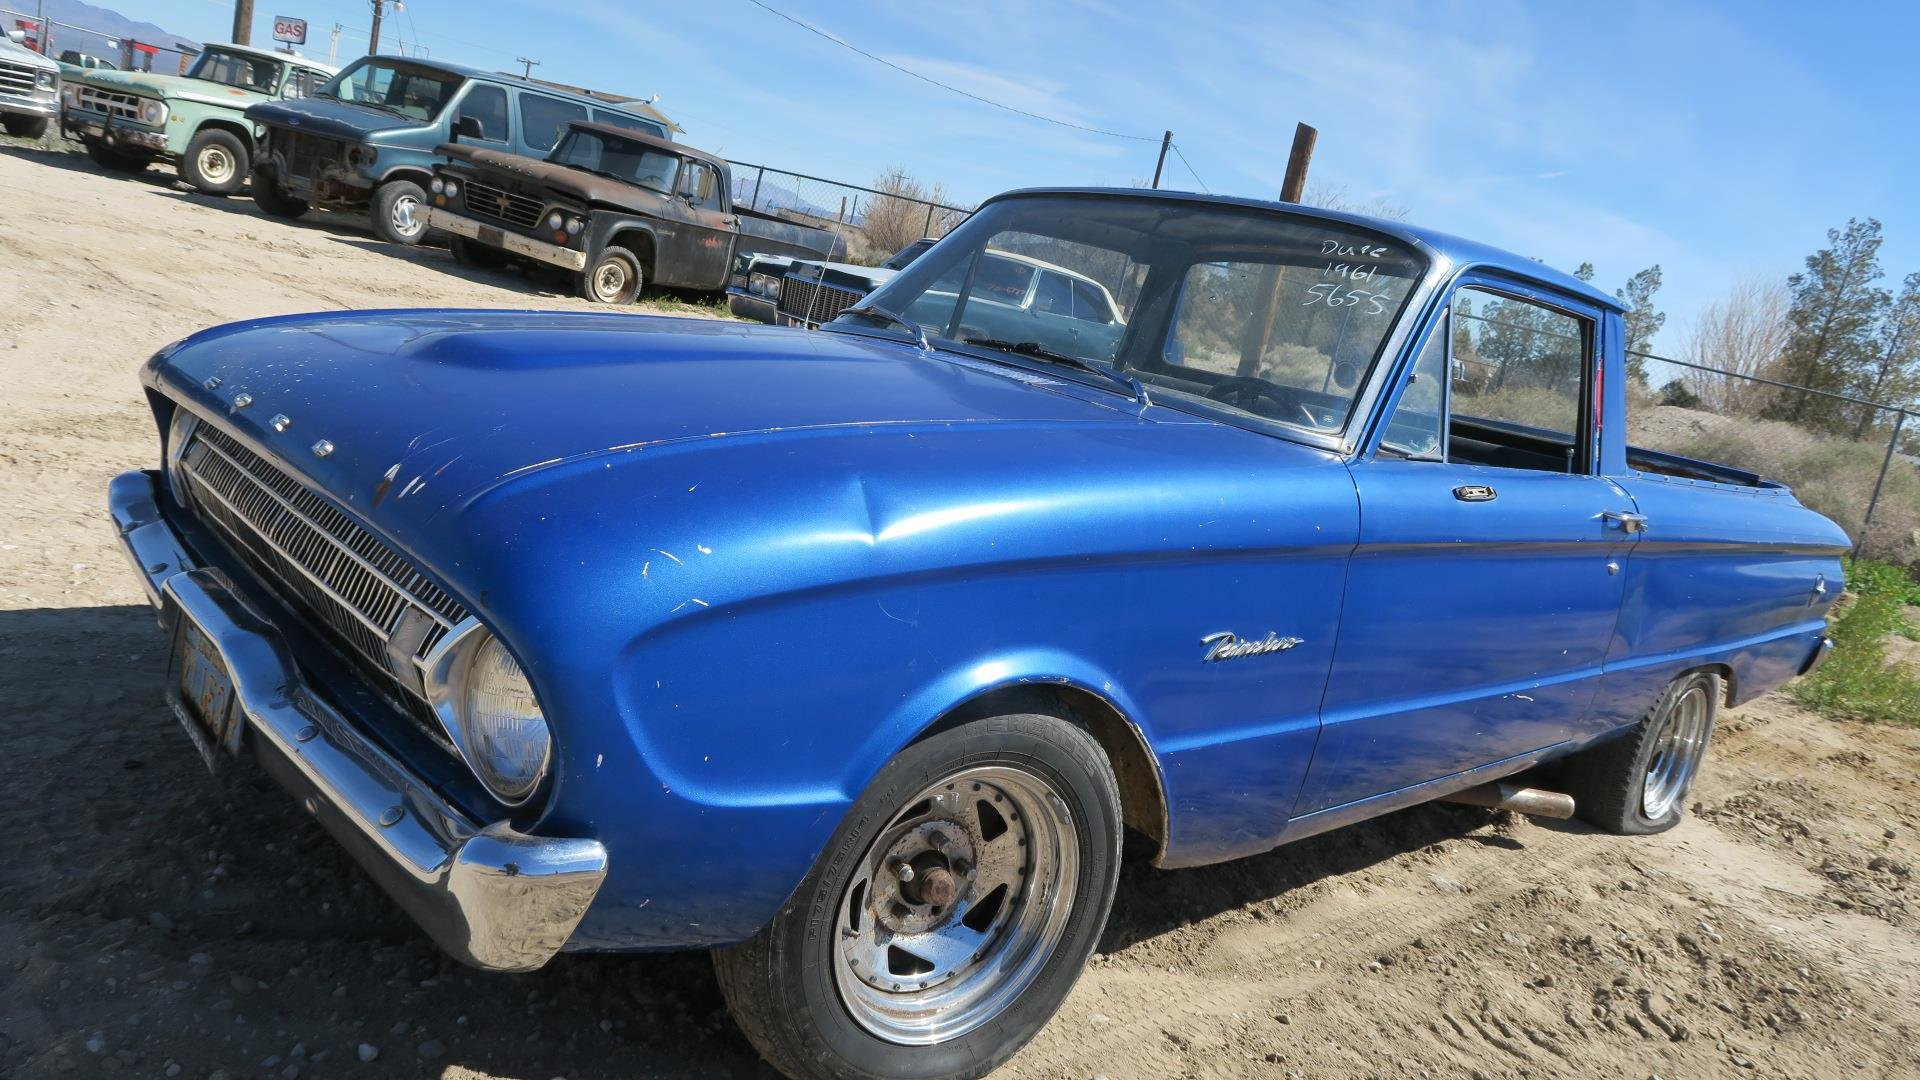 1961 Ford Ranchero Car(~)Truck 289 AT Cali Project $2.9k For Sale (picture 1 of 6)